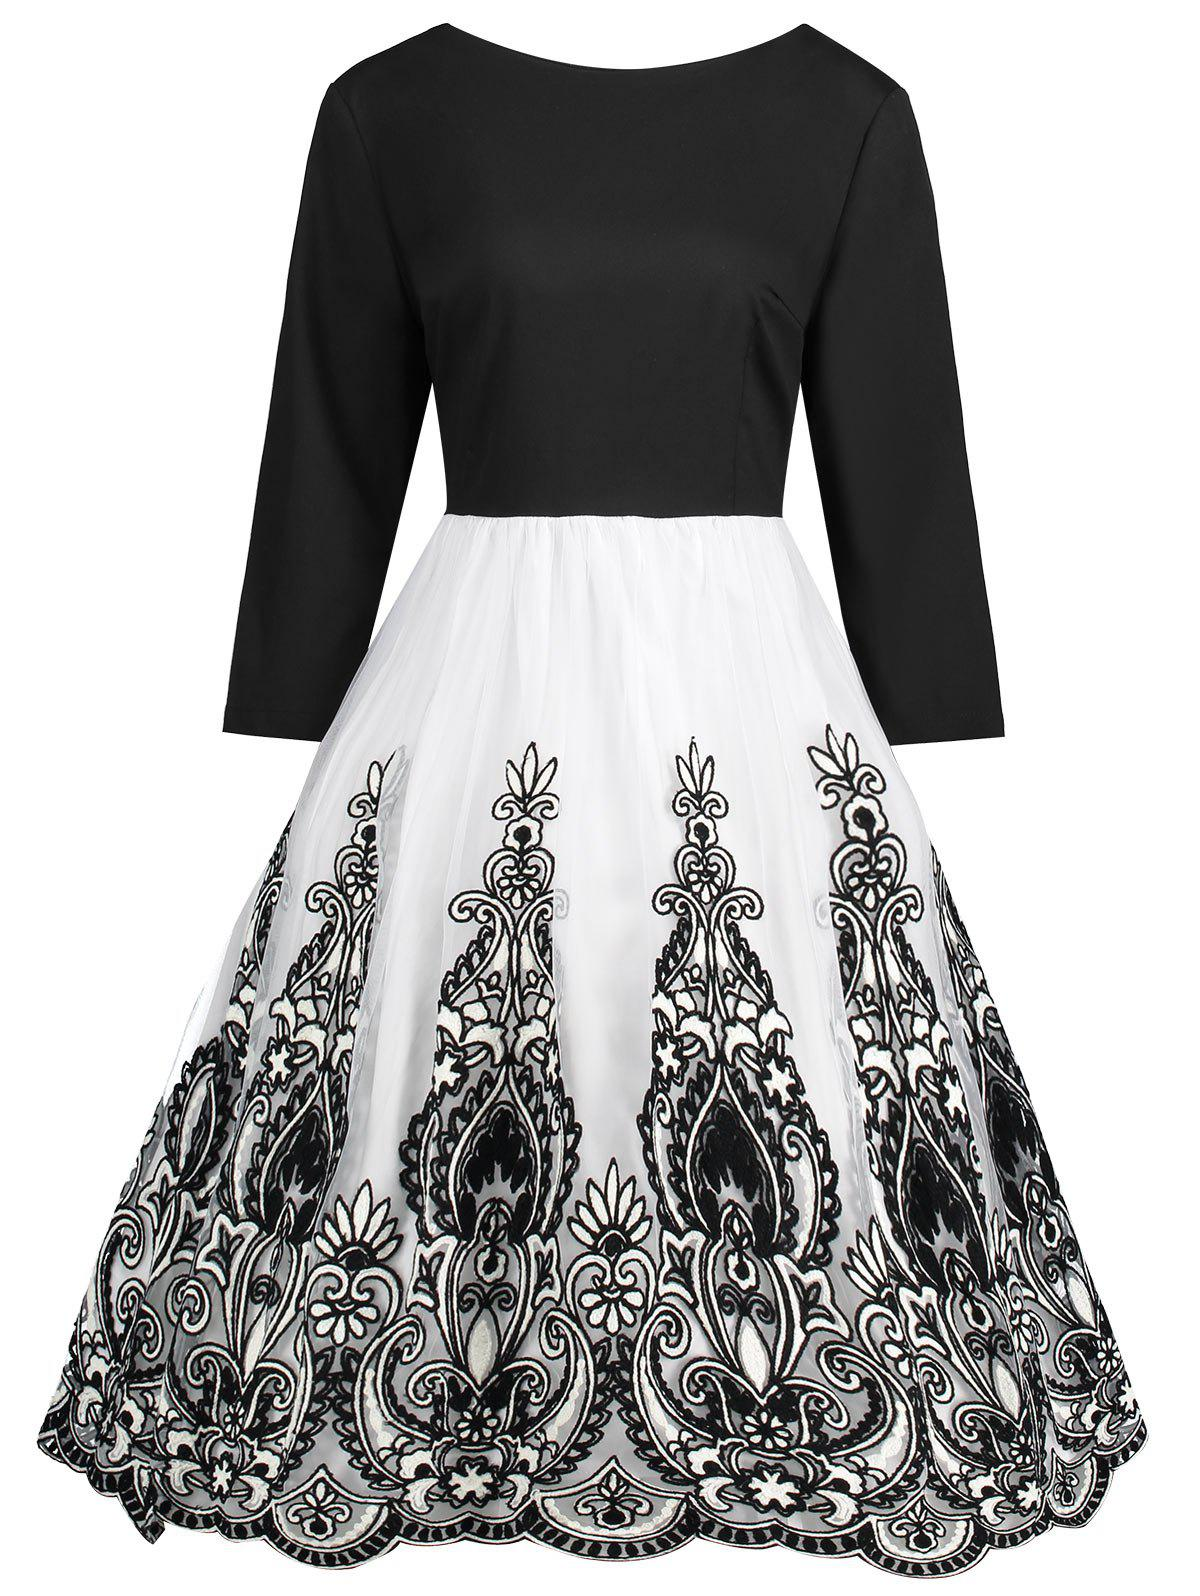 Plus Size Boat Neck Floral Tulle Panel DressWOMEN<br><br>Size: 4XL; Color: BLACK; Style: Casual; Material: Polyester; Silhouette: A-Line; Dresses Length: Knee-Length; Neckline: Boat Neck; Sleeve Length: 3/4 Length Sleeves; Embellishment: Lace; Pattern Type: Floral; With Belt: No; Season: Fall,Spring; Weight: 0.4750kg; Package Contents: 1 x Dress;